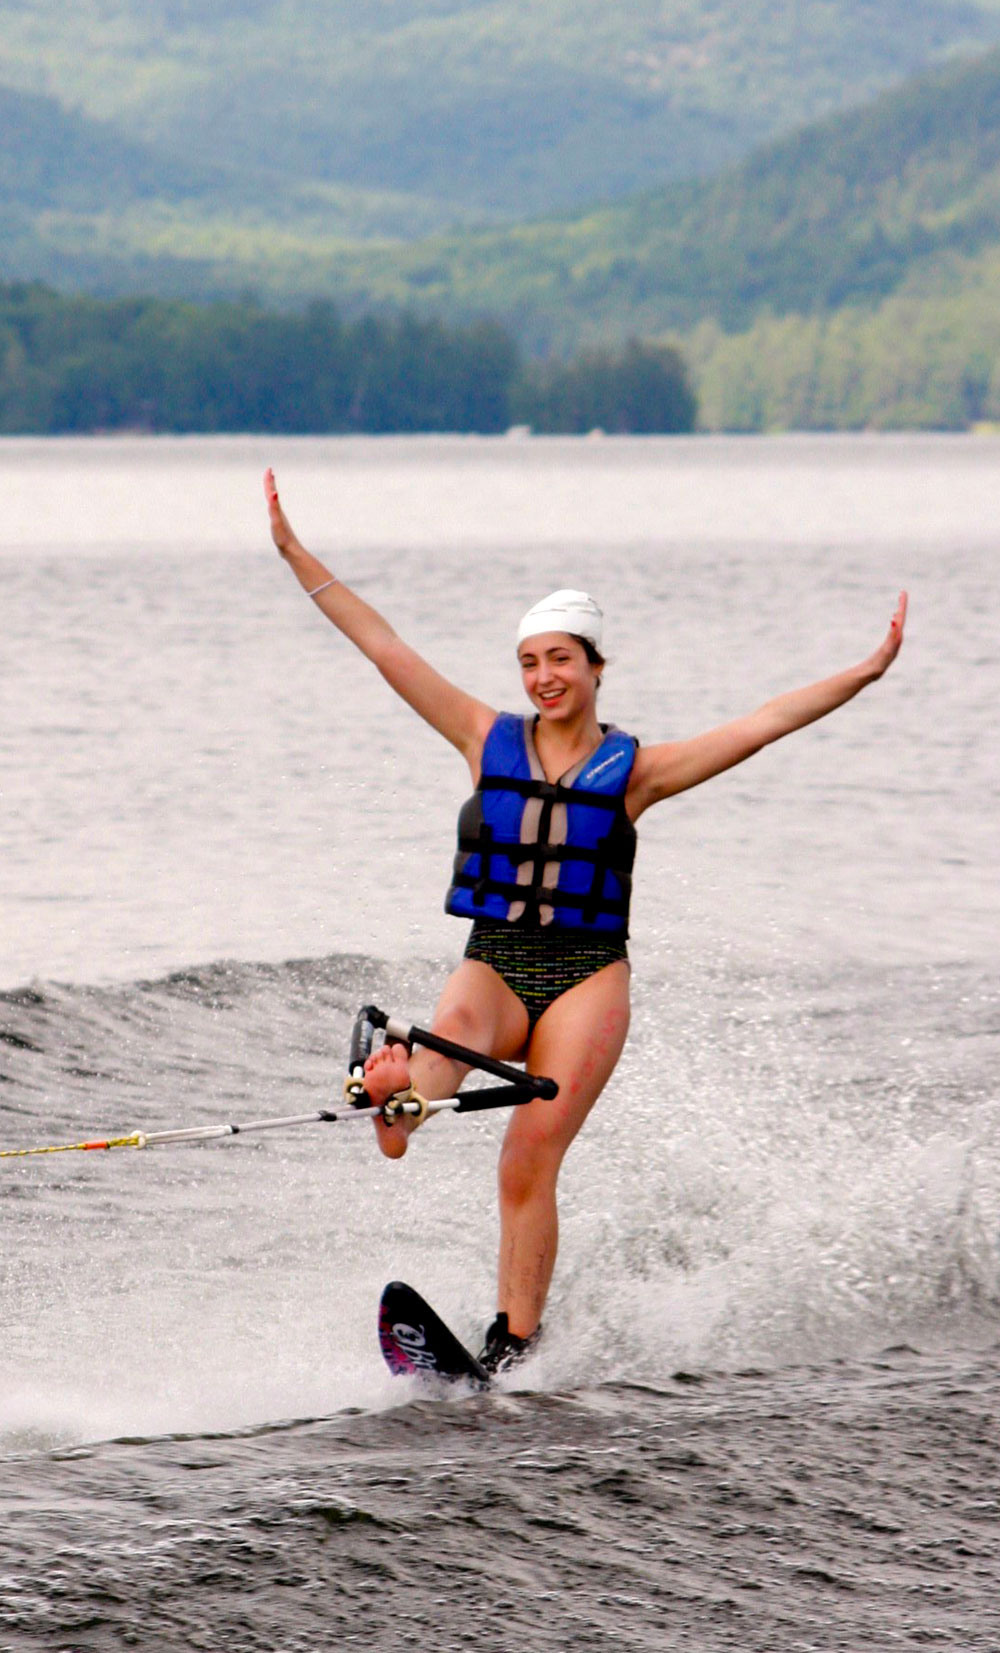 A campers waterskiing without hands